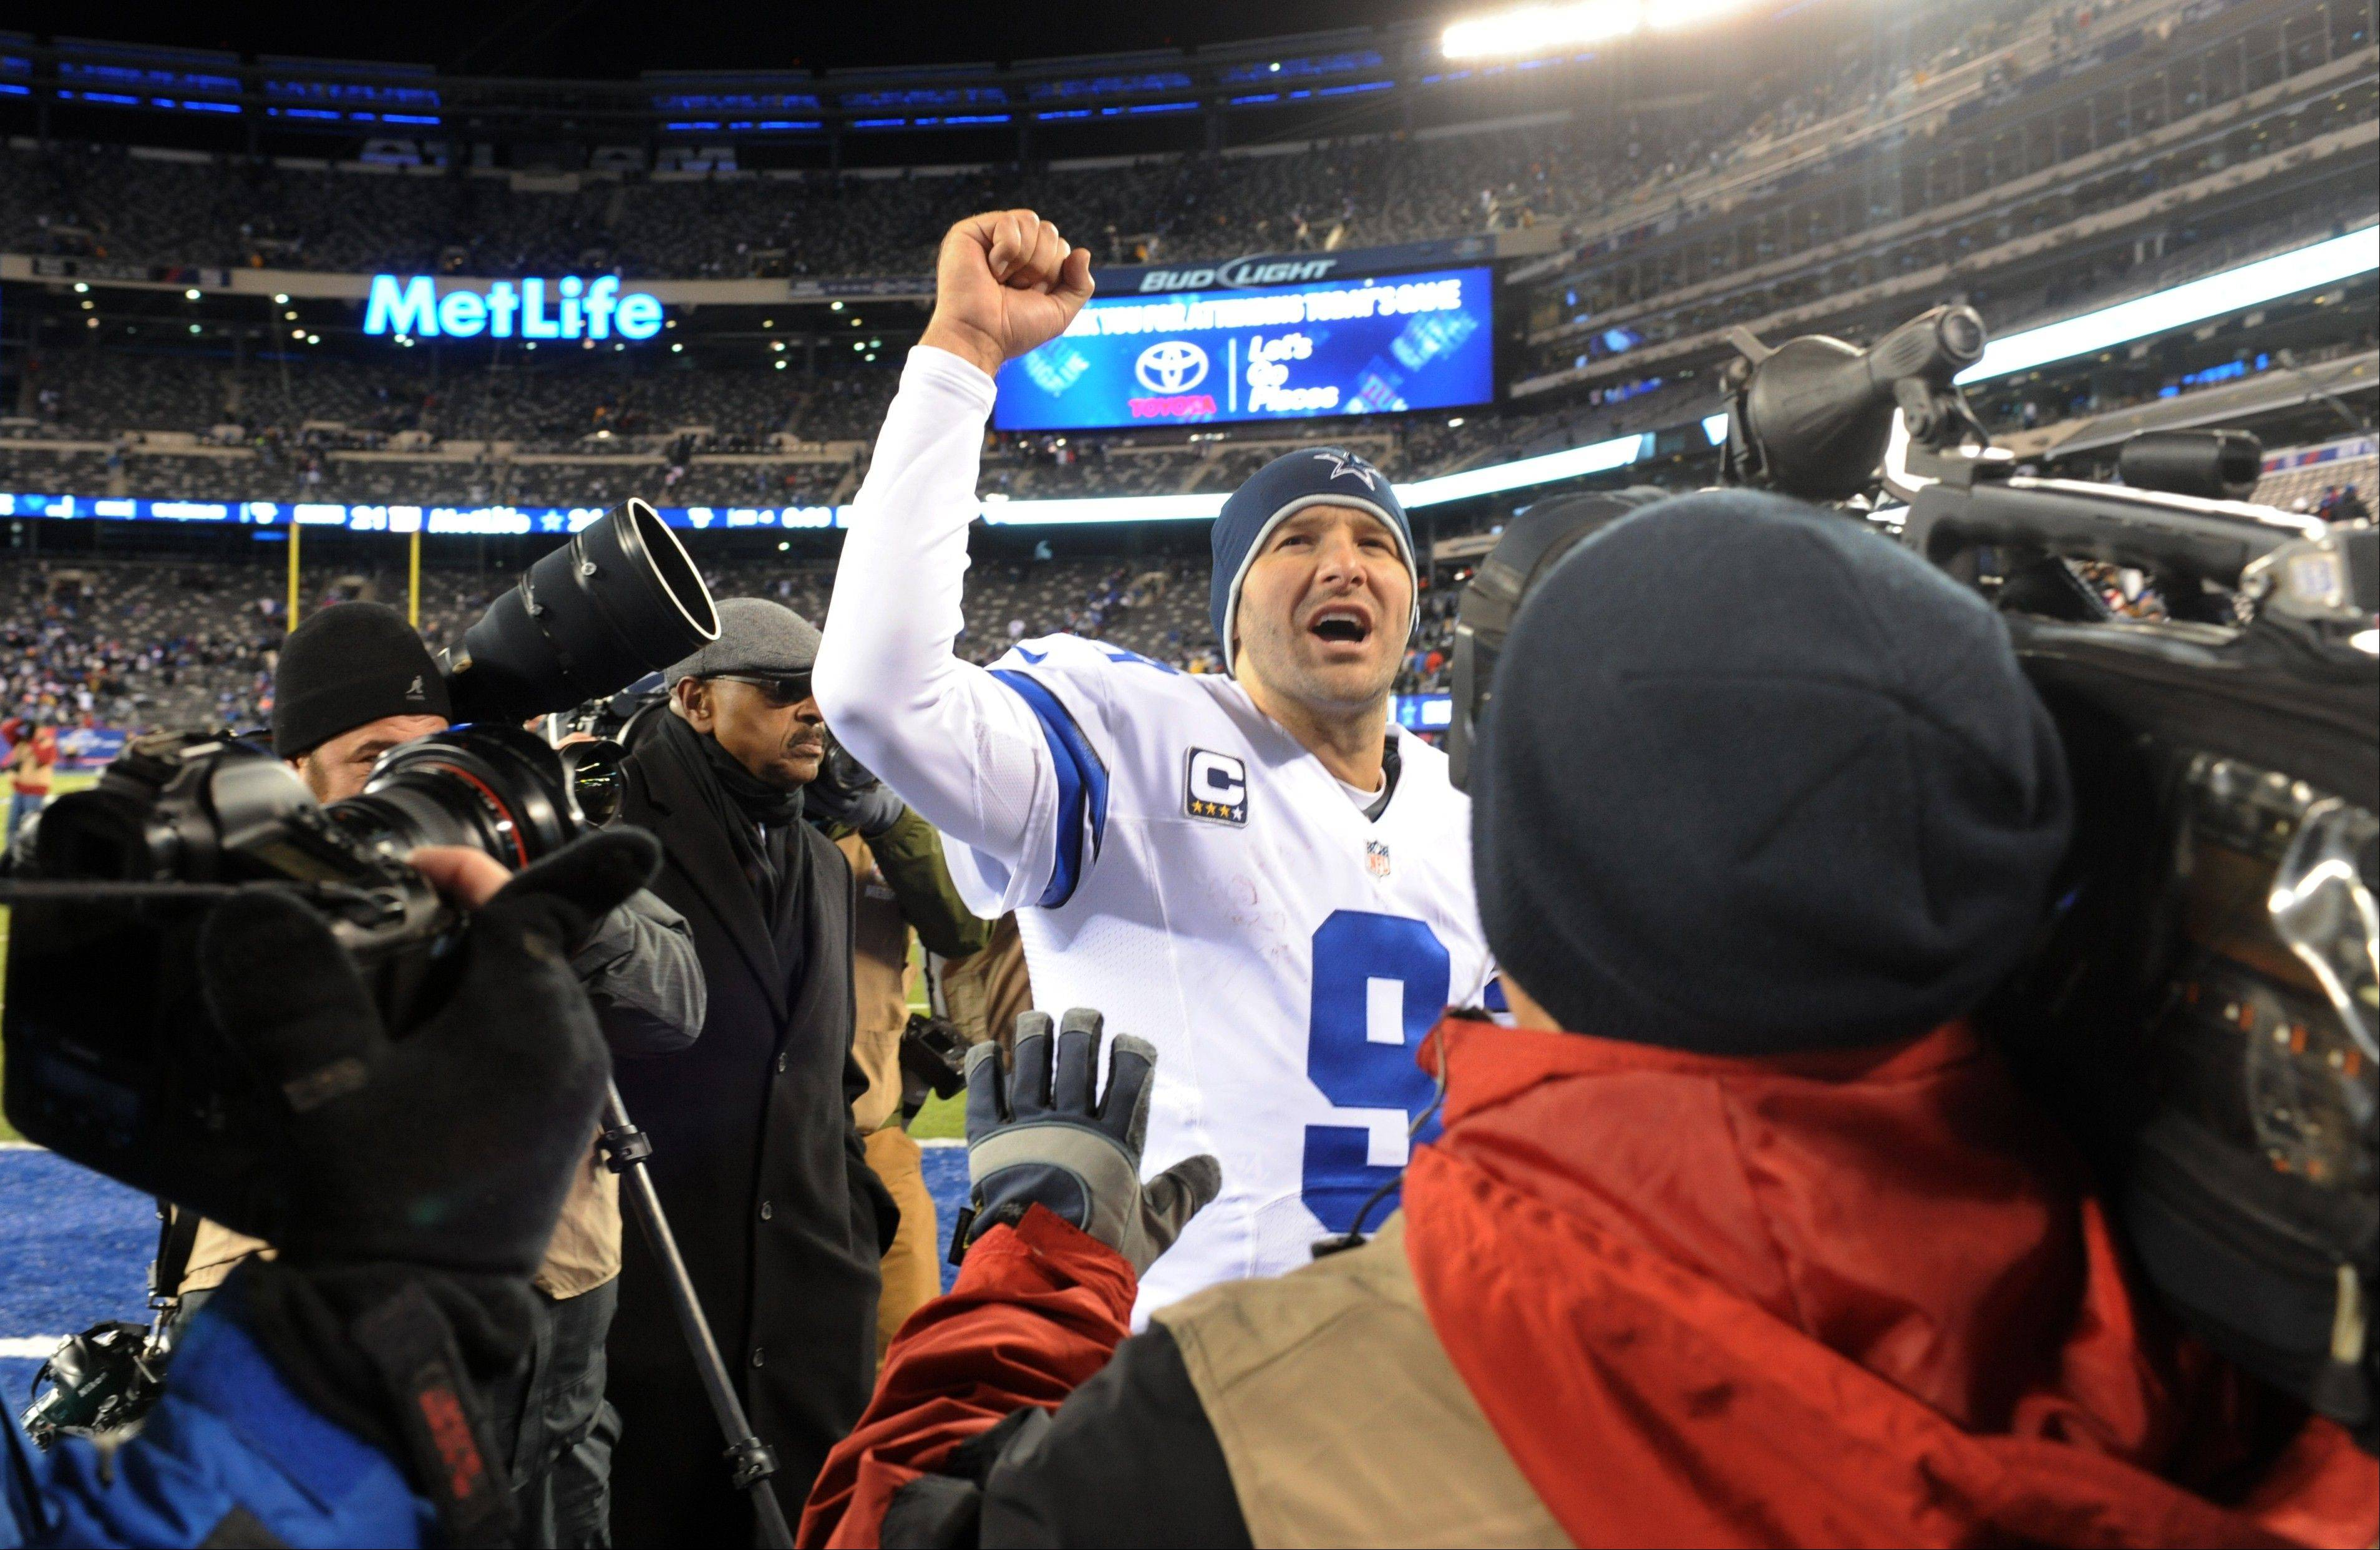 Dallas Cowboys quarterback Tony Romo (9) gestures while leaving the field after an NFL football game against the New York Giants, Sunday, Nov. 24, 2013, in East Rutherford, N.J. The Cowboys won 24-21.